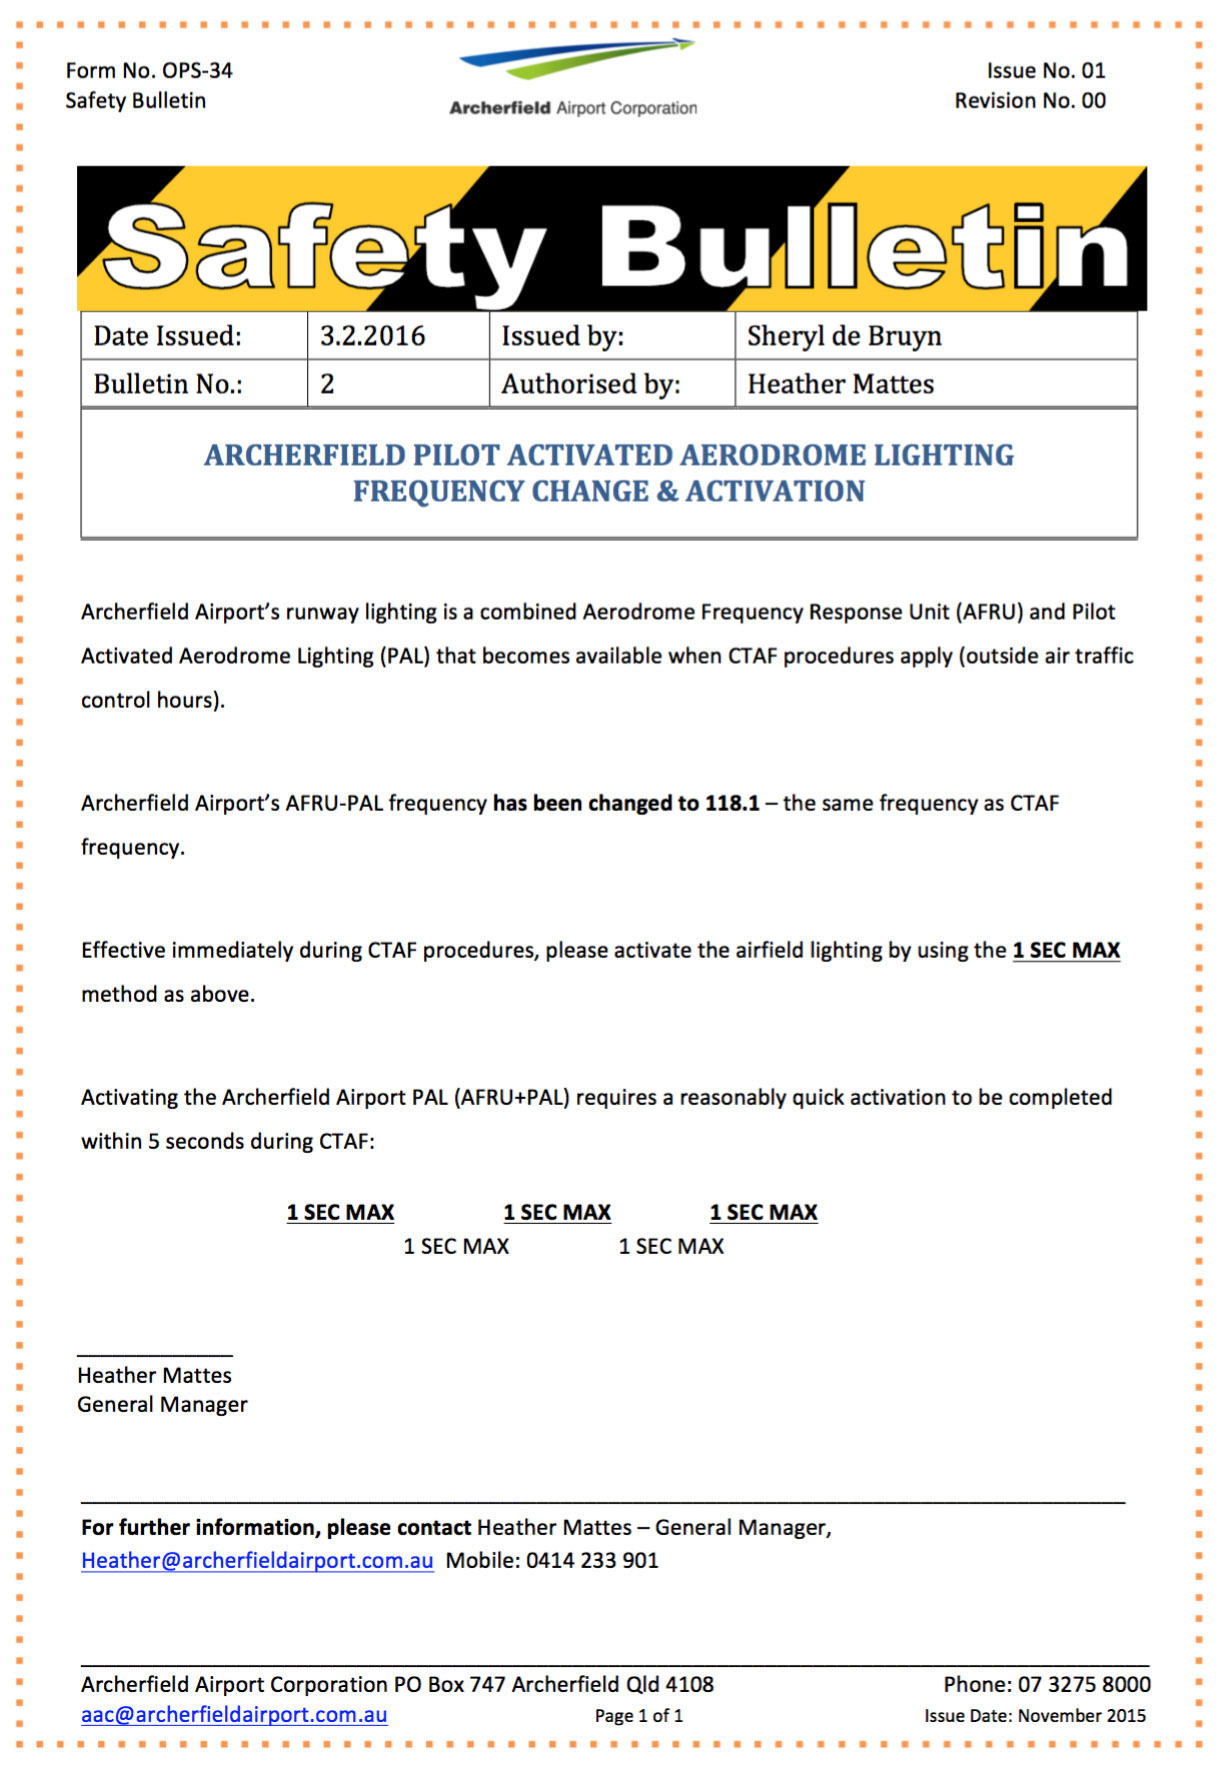 Safety Bulletin - Click to Download in PDF